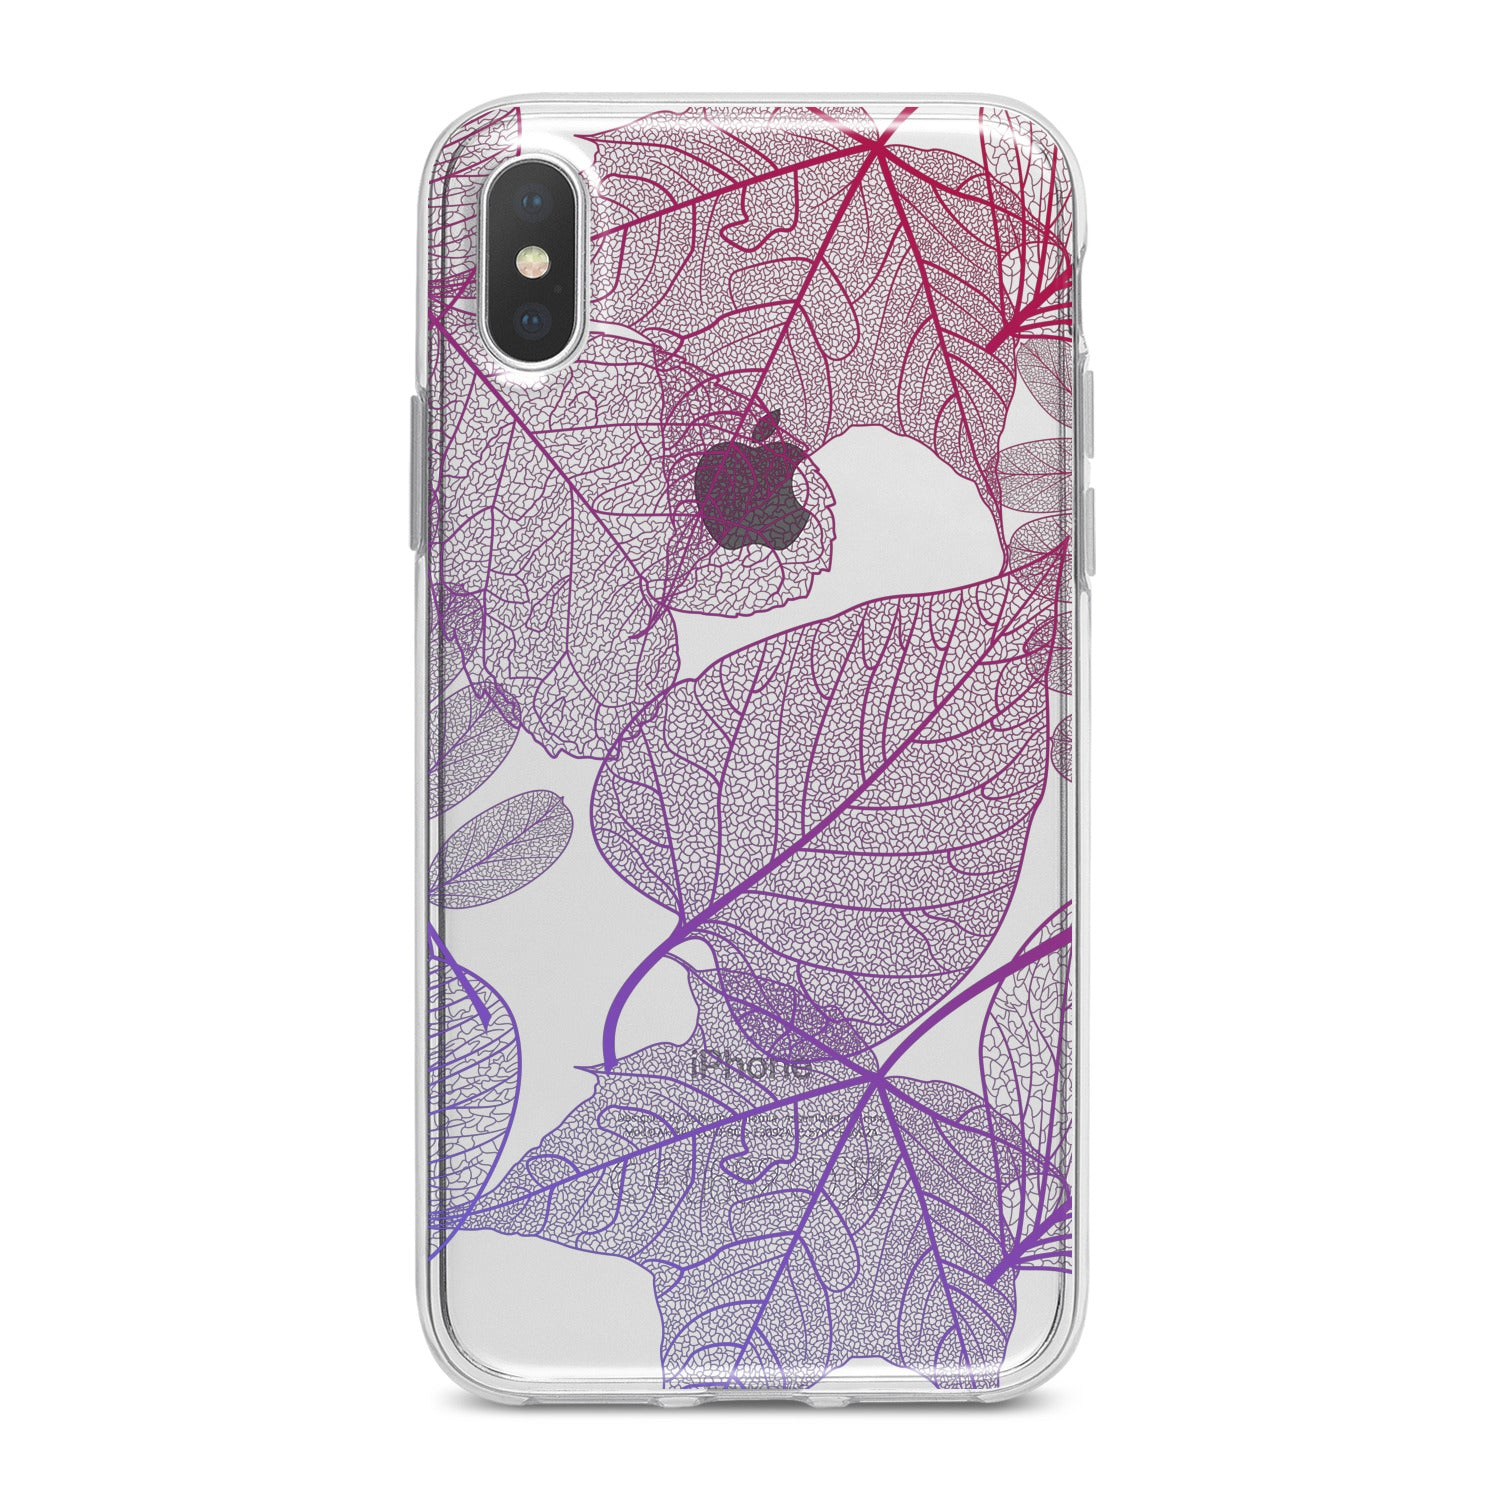 Lex Altern Purple Leaves Phone Case for your iPhone & Android phone.